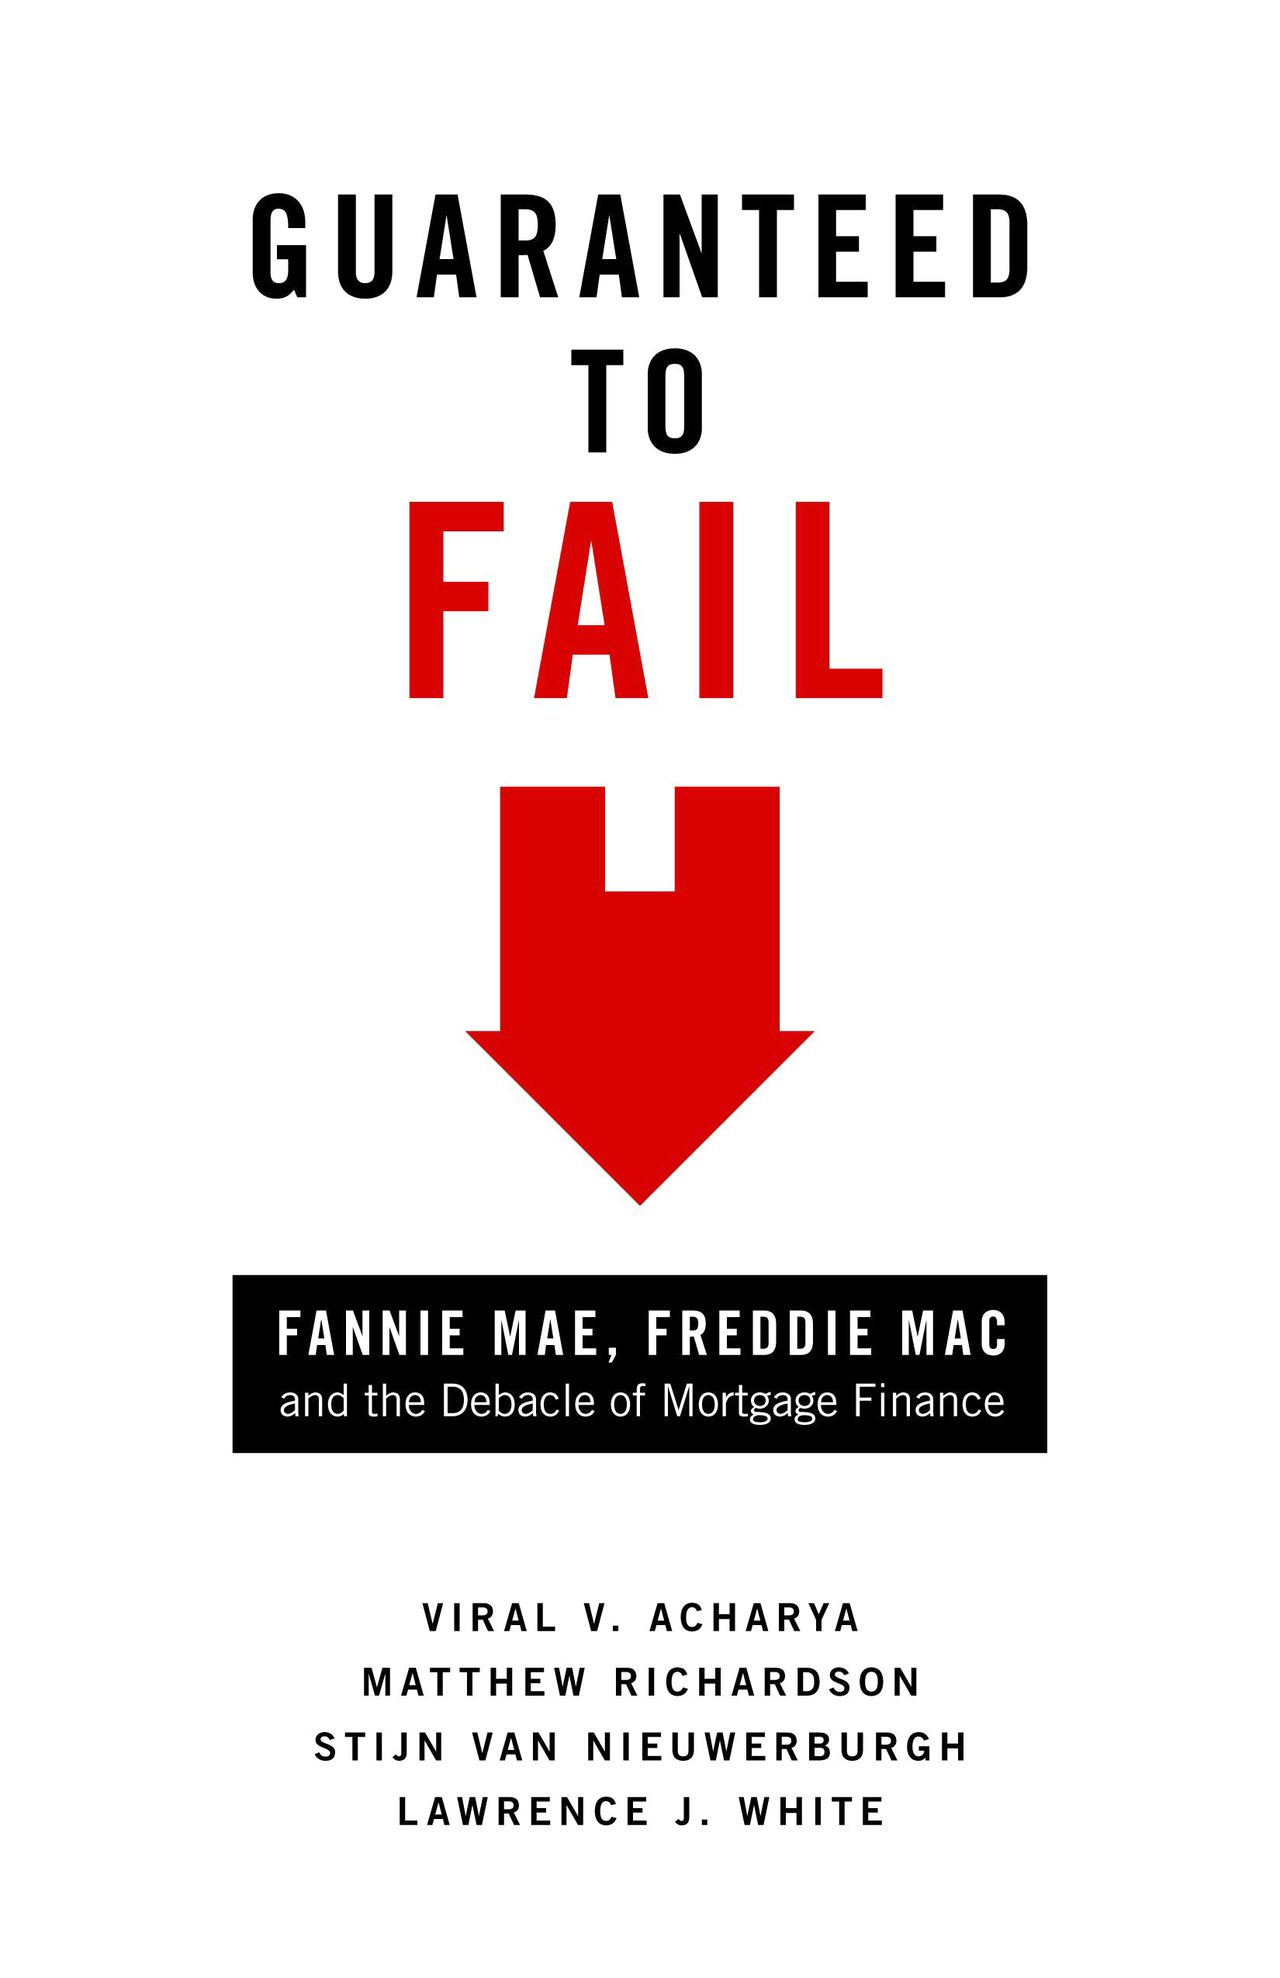 """The cover jacket of """"Guaranteed to Fail: Fannie Mae, Freddie Mac and the Debacle of Mortgage Finance"""" is shown in this undated photo released to the press on March 29, 2011. The book is by Viral V. Acharya, Matthew Richardson, Stijn Van Nieuwerburgh and Lawrence J. White. Source: Princeton University Press via Bloomberg"""